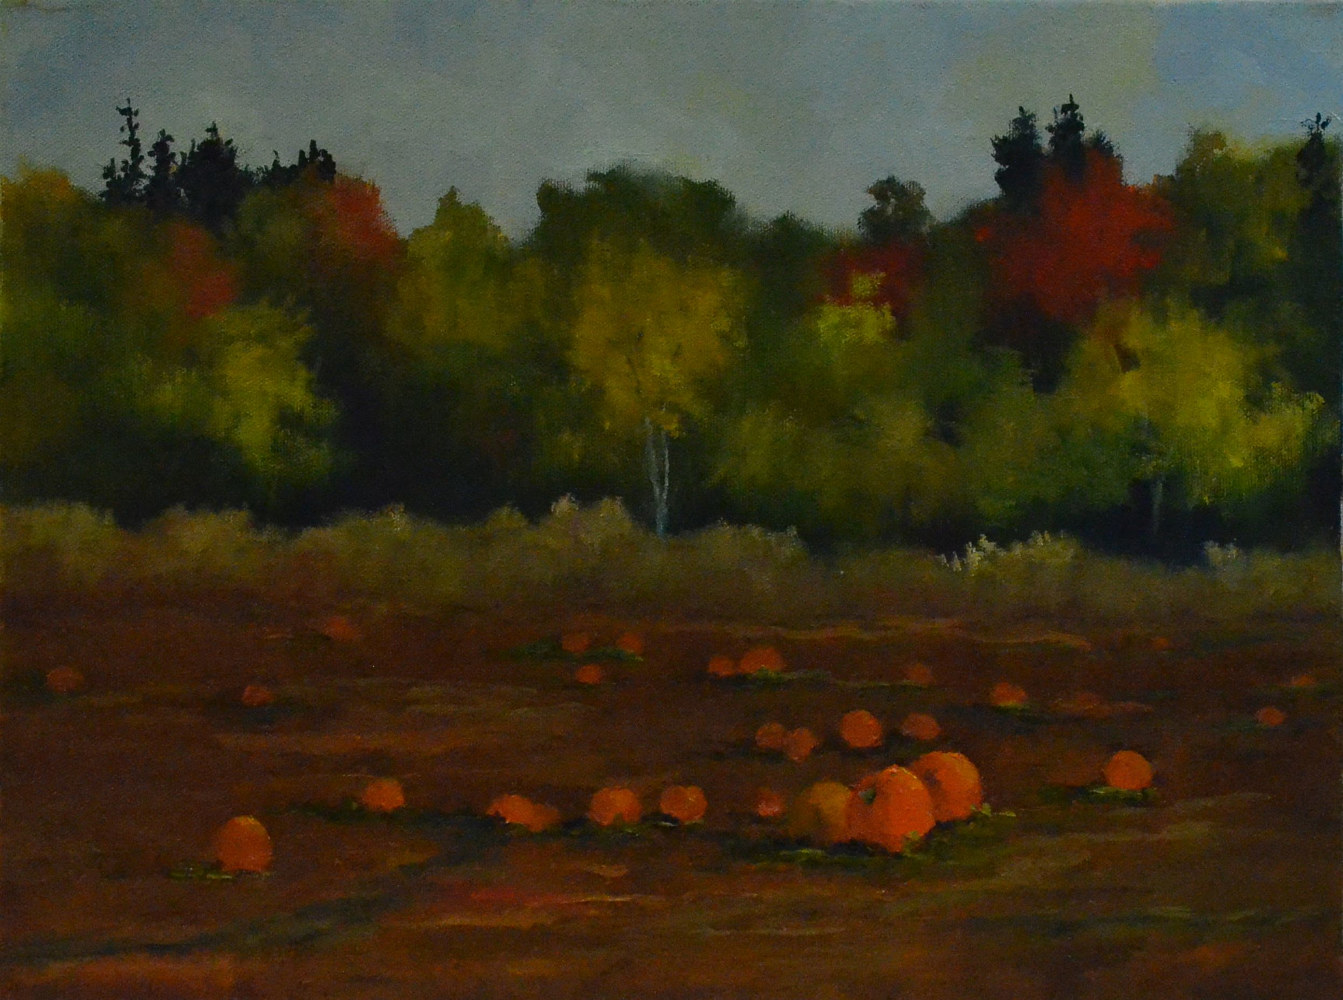 Harvest - 12 x 16, oil on canvas - 33-1118 by Patricia Savoie